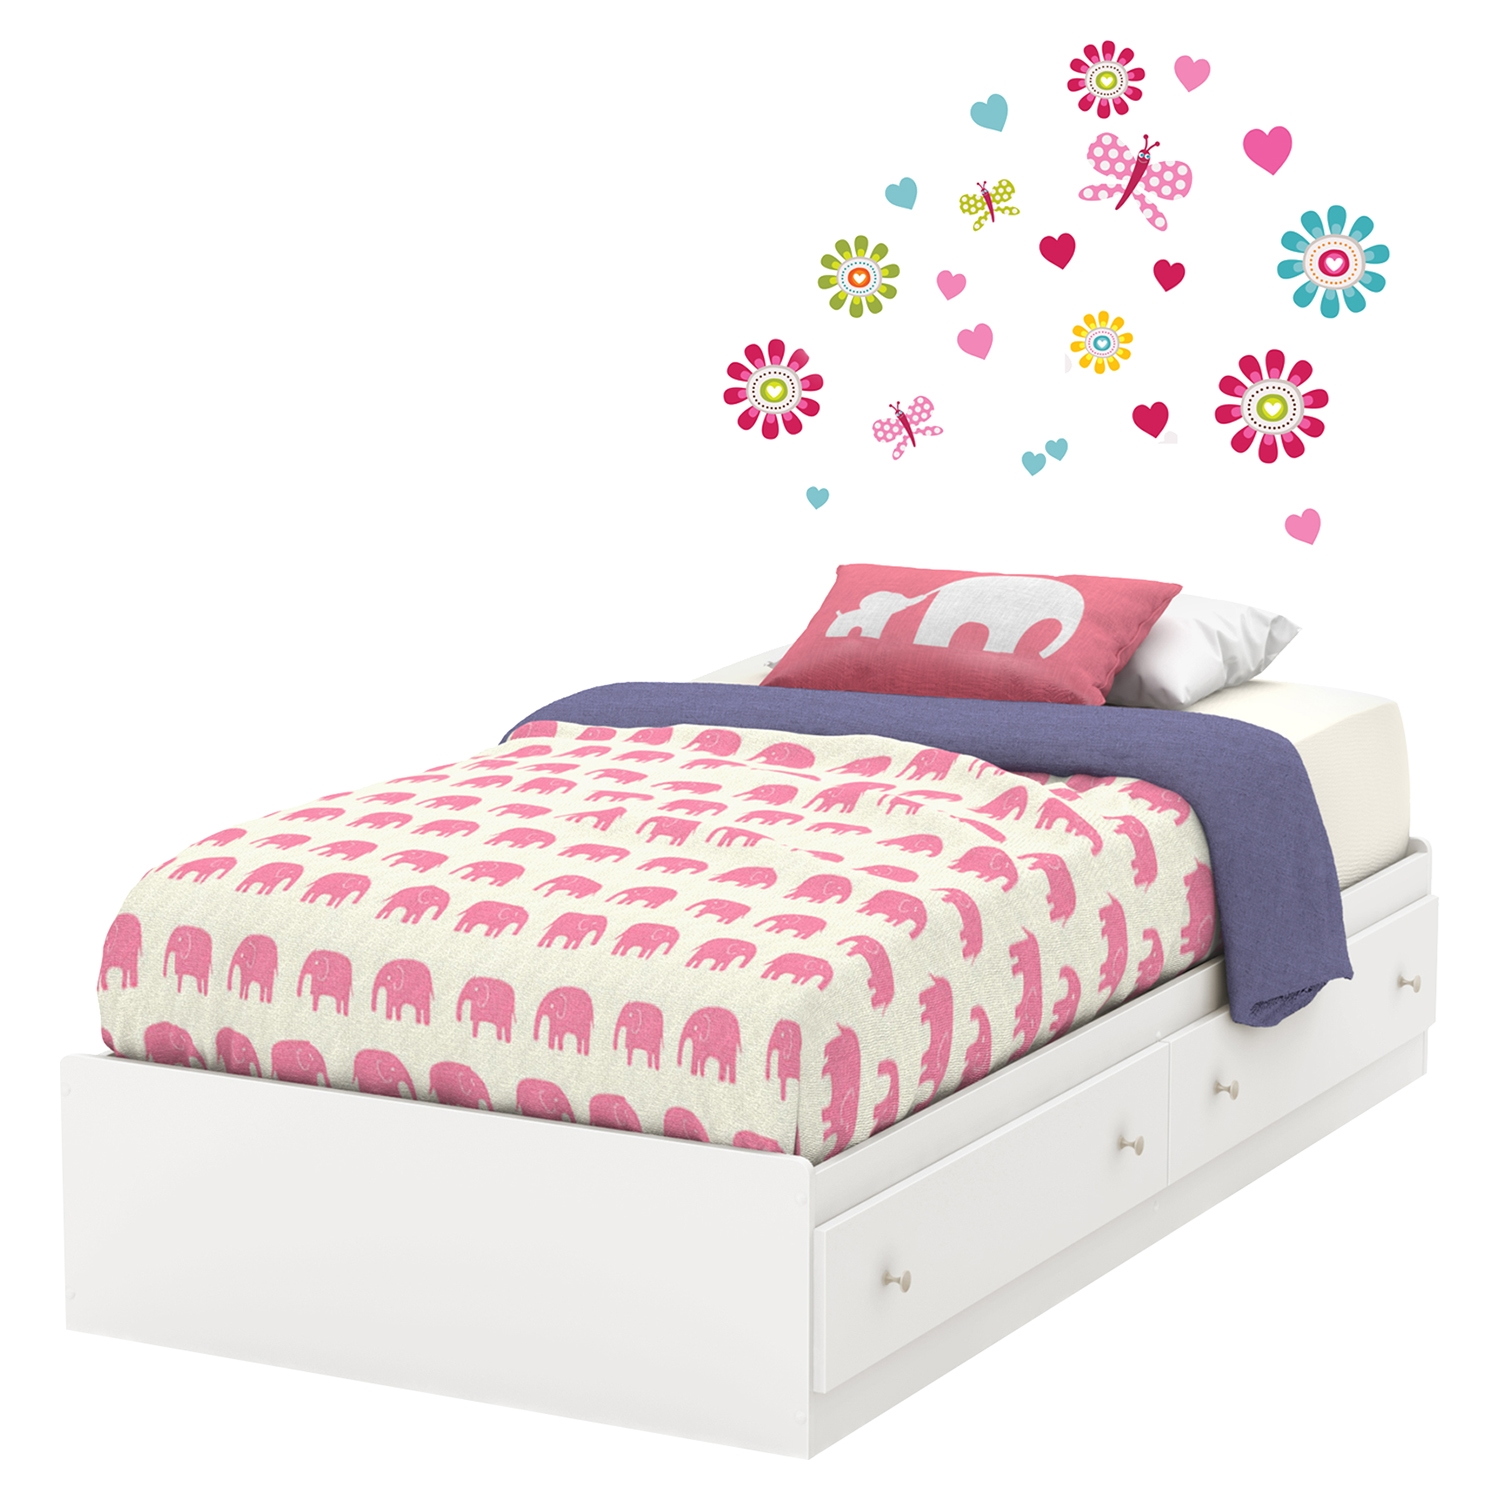 Joy Twin Mates Bed - Drawers and Flowers Wall Decals Set, Pure White - SS-8050119K